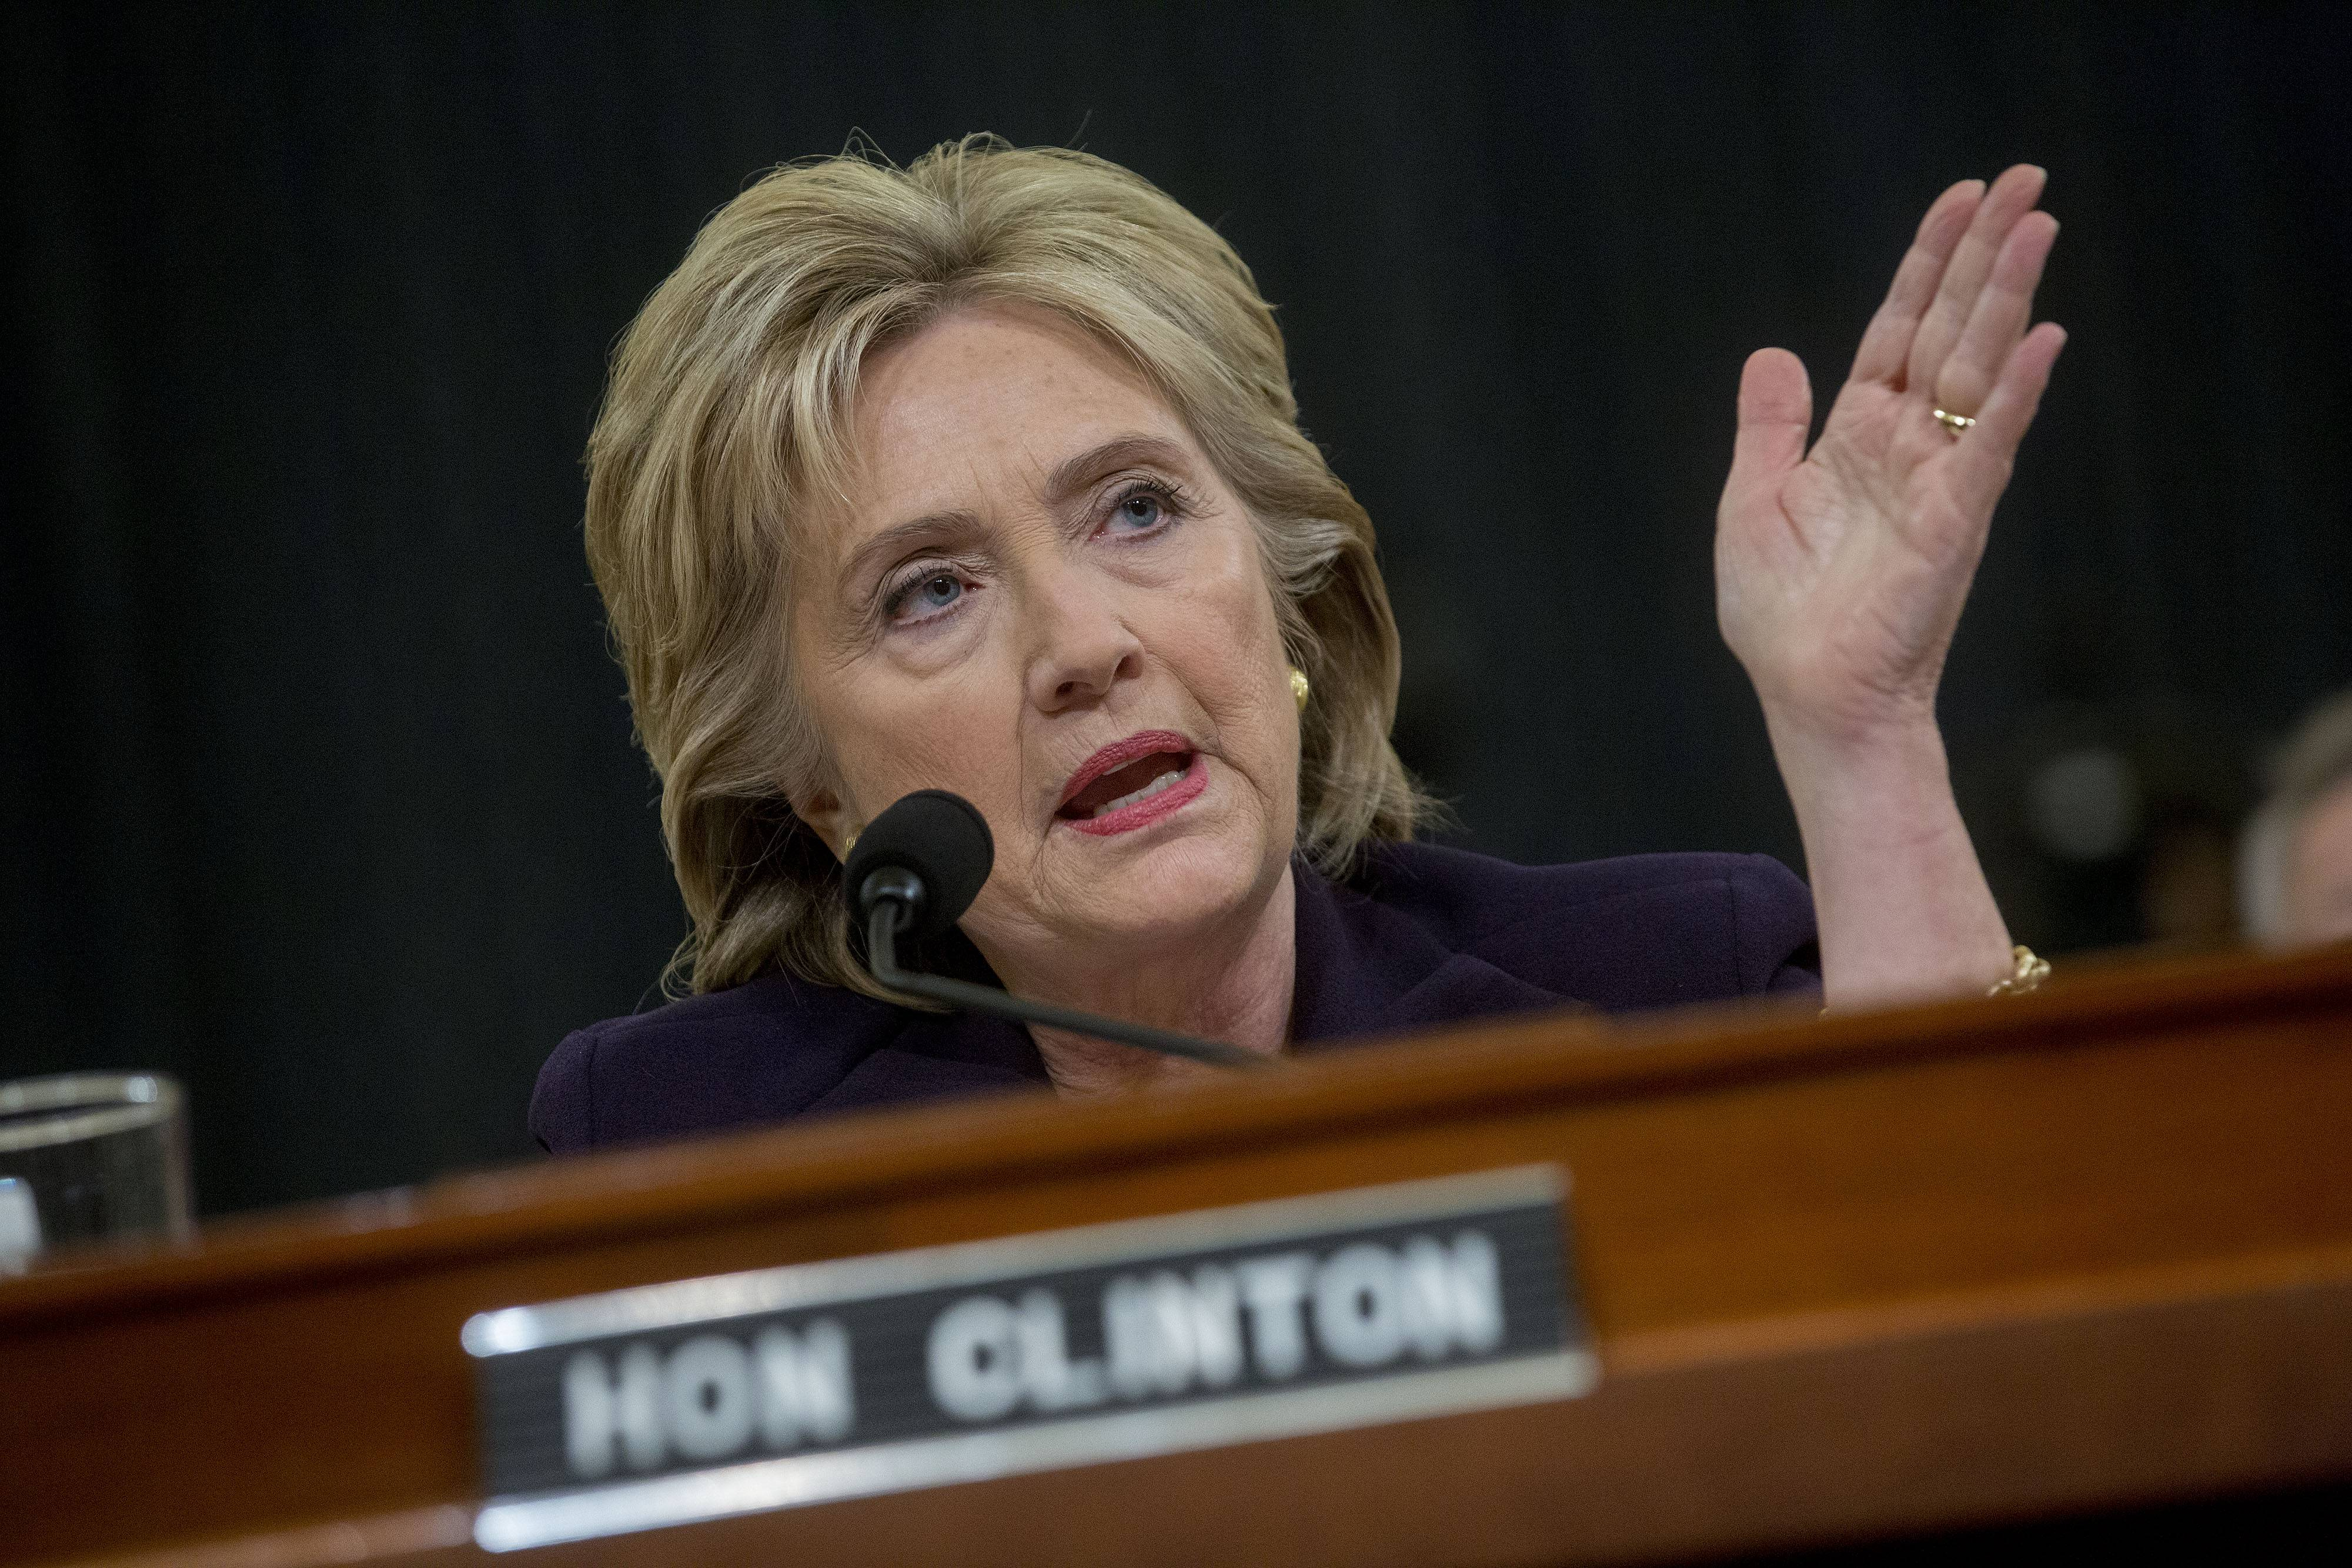 Hillary Clinton, former U.S. secretary of state and 2016 Democratic presidential candidate, speaks during a House committee hearing on Benghazi on Thursday in Washington.